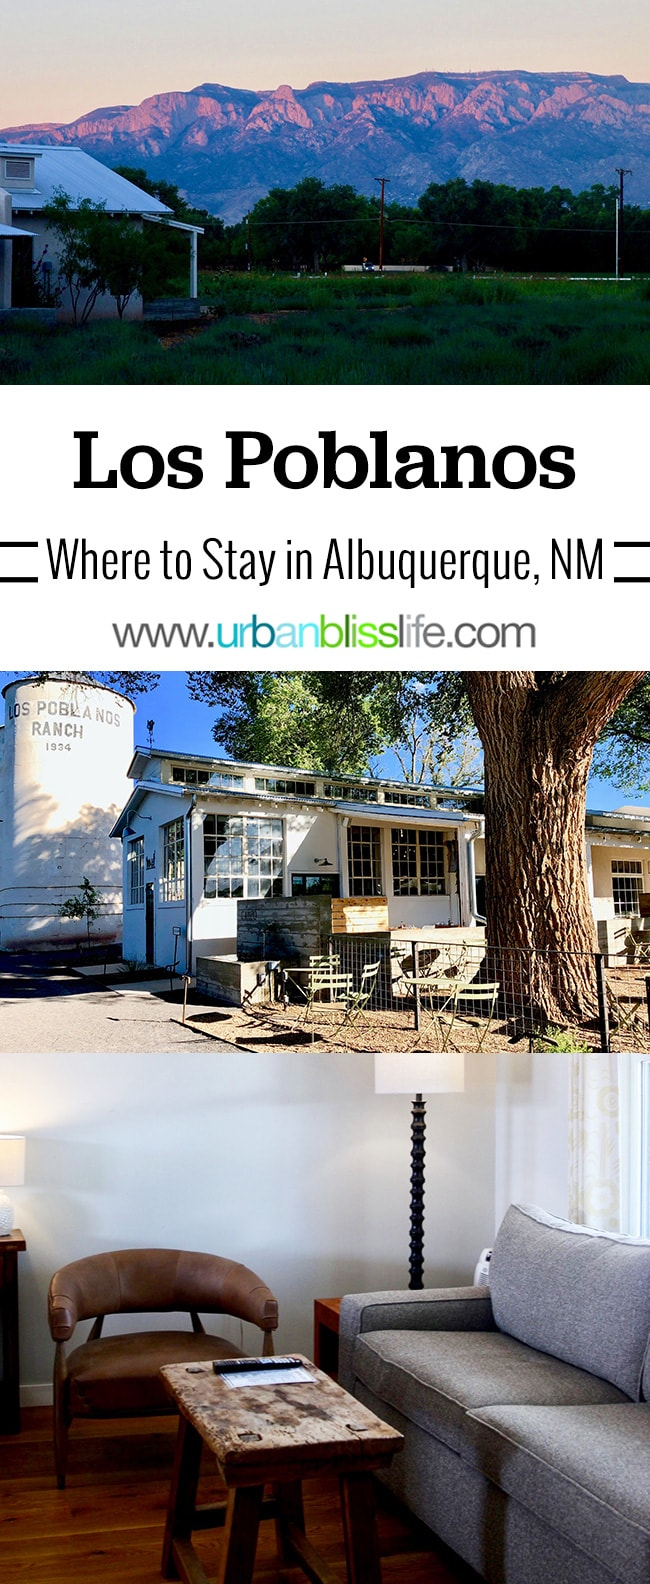 Los Poblanos Inn Albuquerque New Mexico